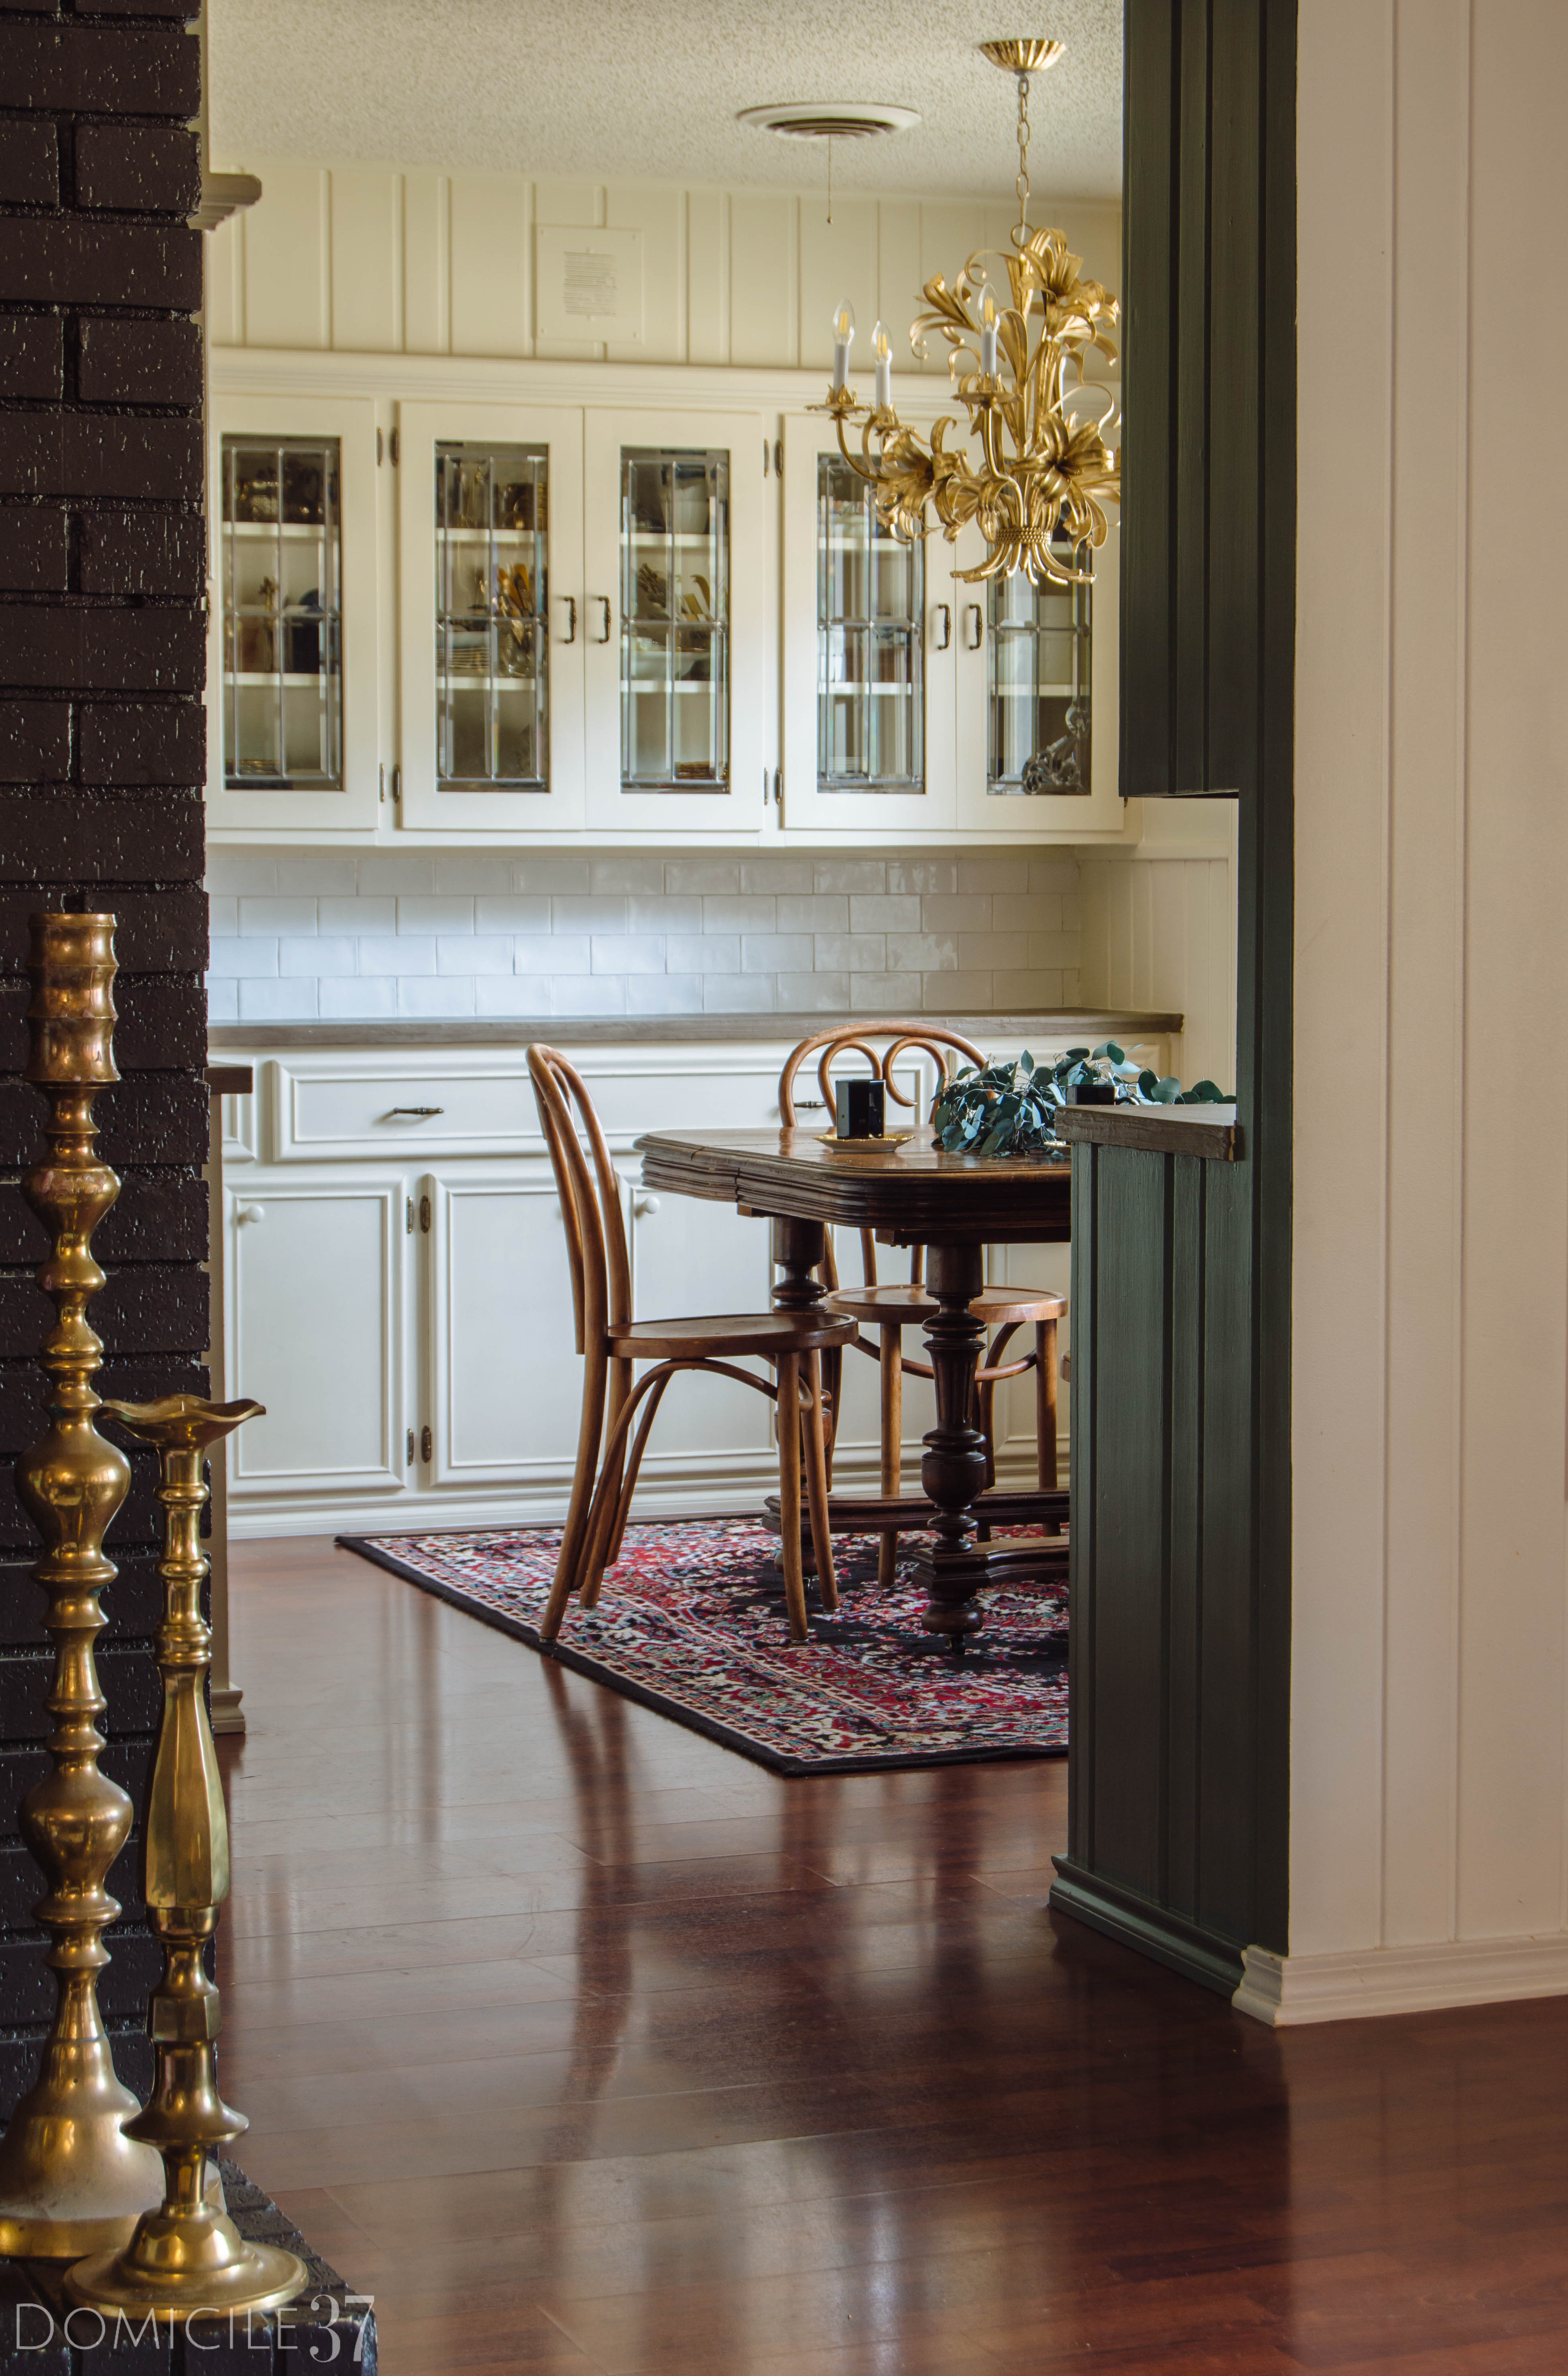 soulful home, Hallway makeover, Farrow and Ball Clunch, Gold frames, Photograph Art, DIY Coat Rack, Tufted Yellow Bench Lamps Plus, Wall Paneling, Nostalgic Hardware, Vintage Reproduction door knobs, Farrow and Ball Clunch, Thomas Mach Interiors